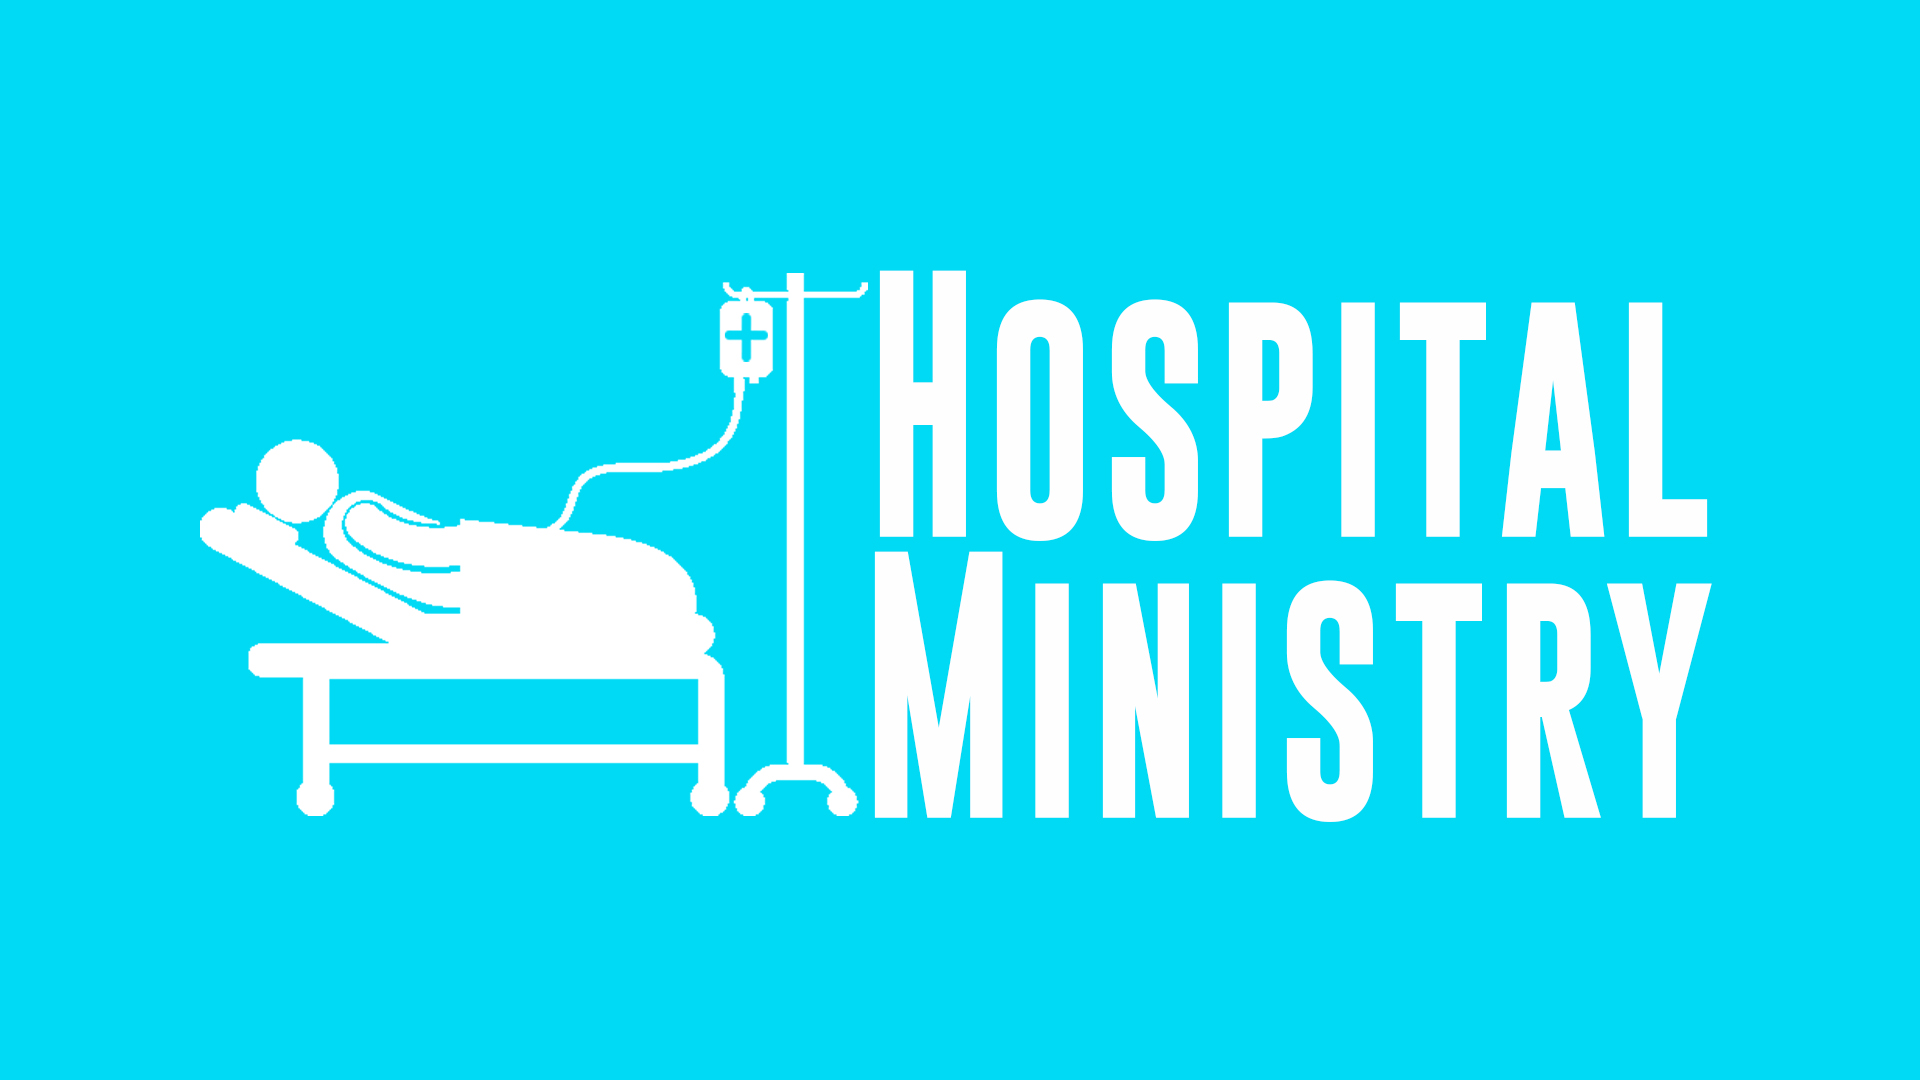 Hospital Ministry - The hospital ministry is committed to ministering the love and compassion of Jesus Christ to those who are confined to a medical center. During times of illness, a prayer of faith, and a act of kindness, can help someone in need to get through a difficult day because the word of God brings comfort.